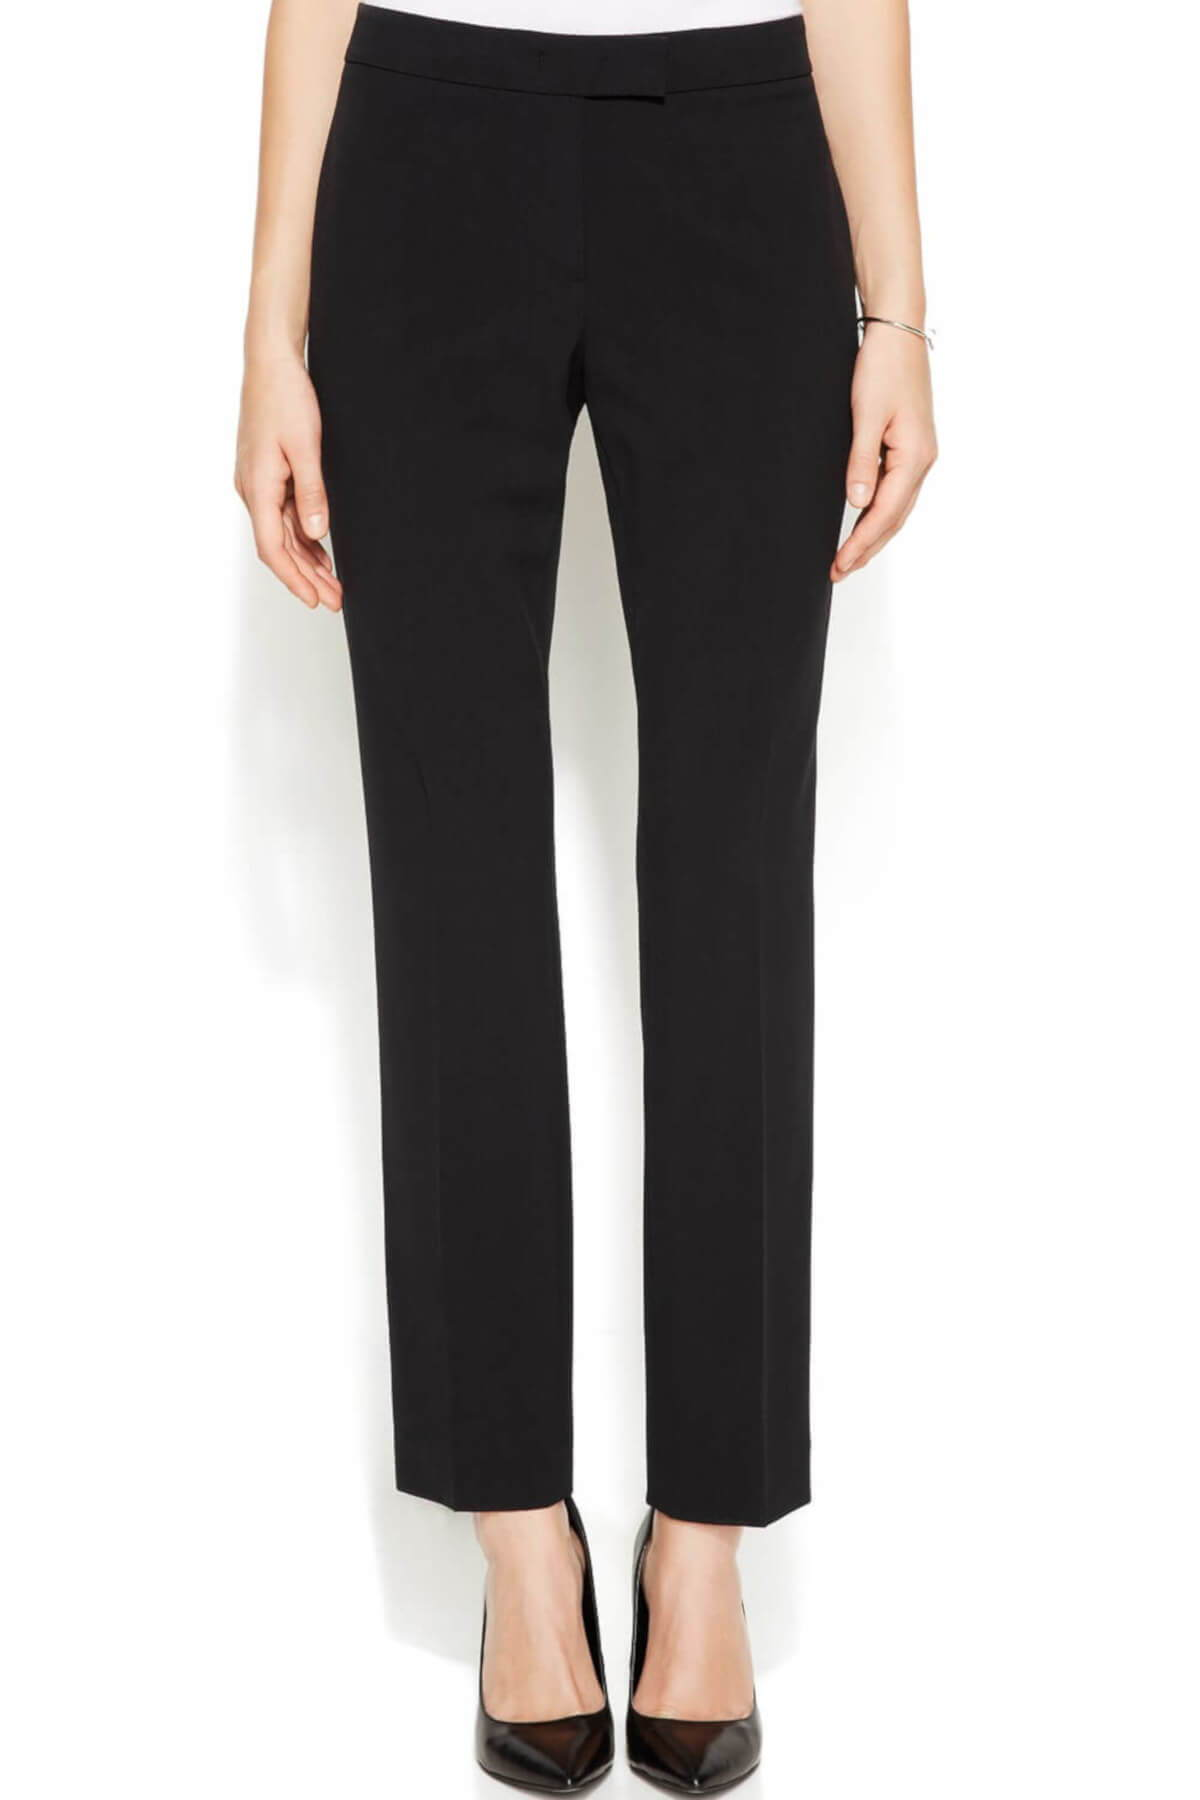 Black Antonio Melani Tallulah Wool Straight Pants Slacks Business Casual Work Attire for Women